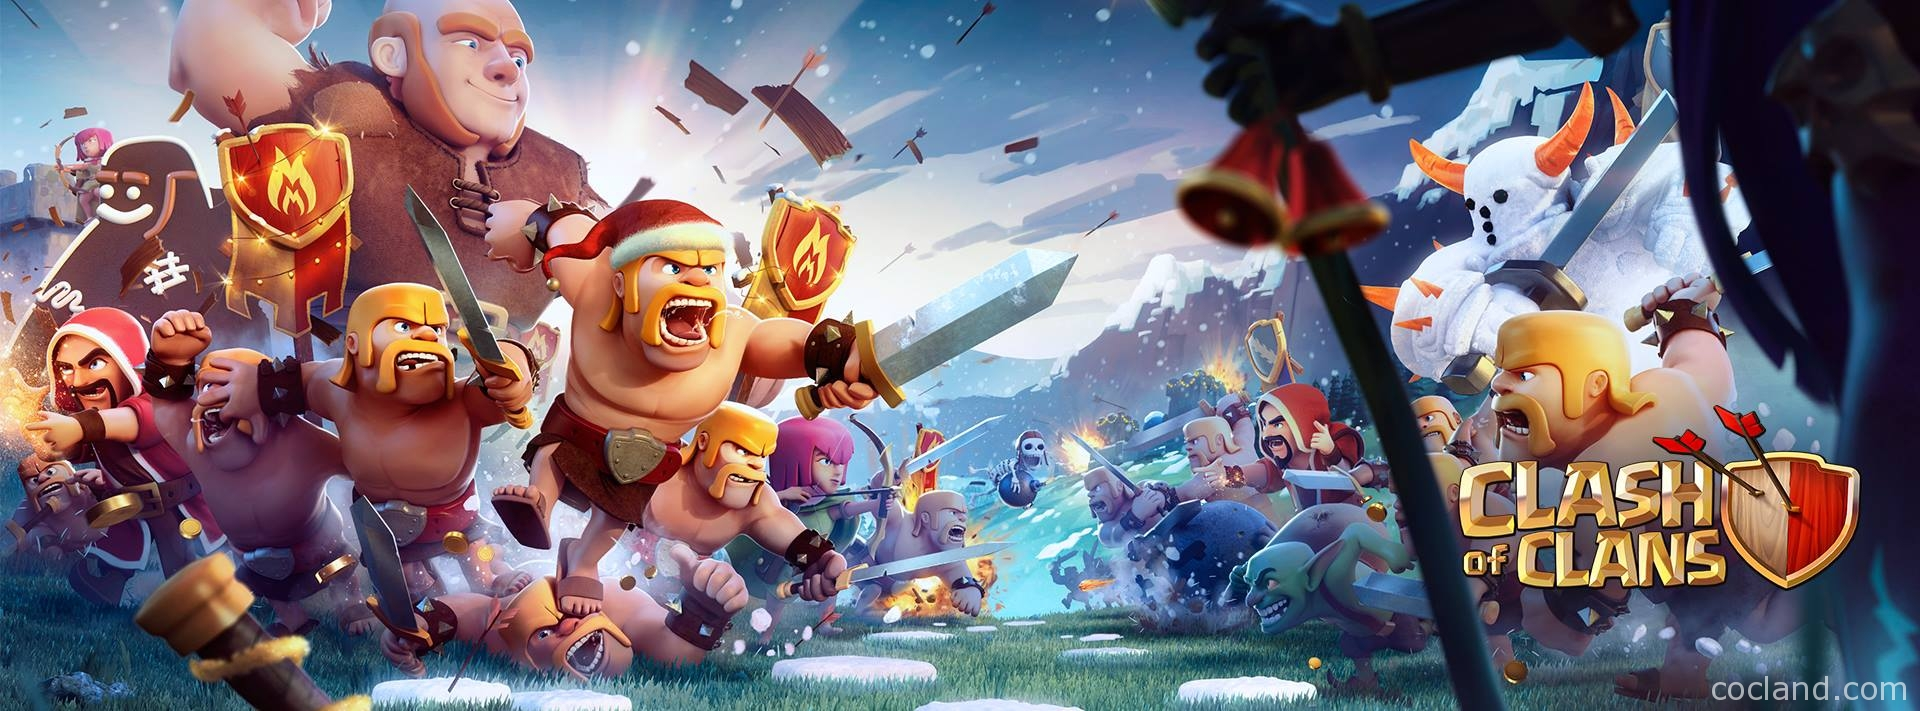 Clash of Clans Wallpaper hd 1080p images 1920x711